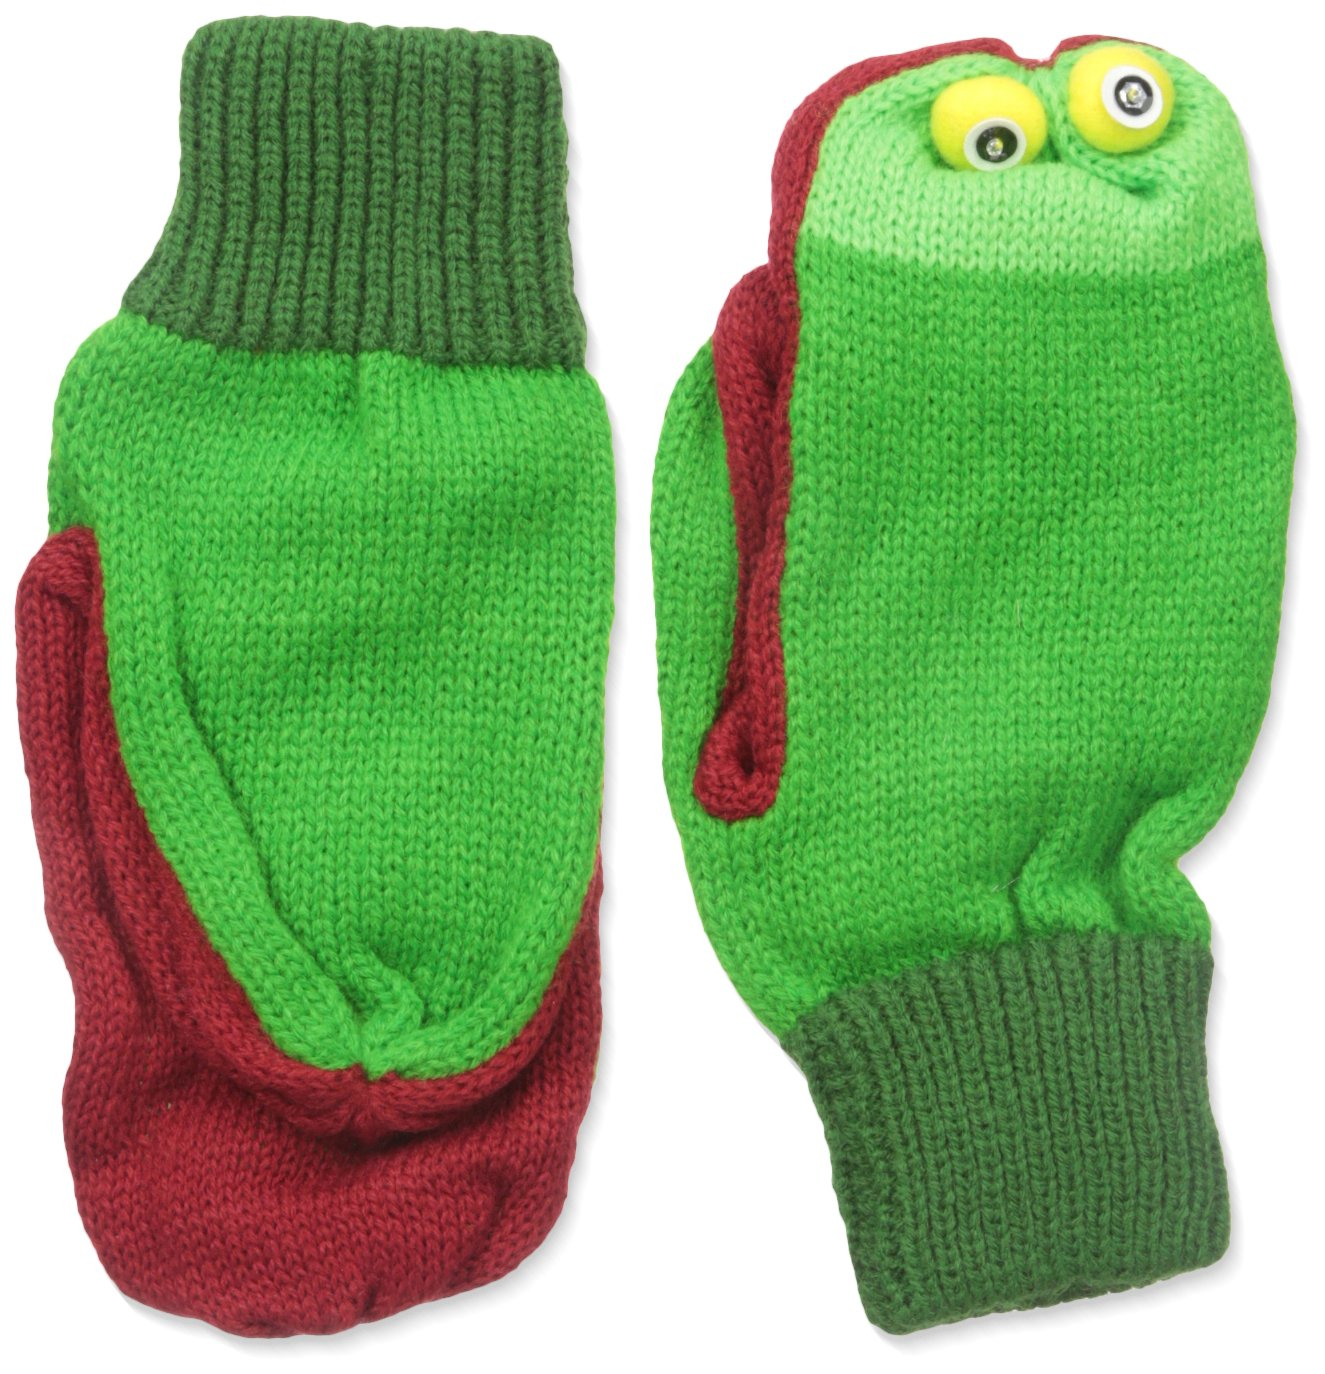 Kidorable Boys' Little Frog Mittens, Green, Medium (ages 6-8)